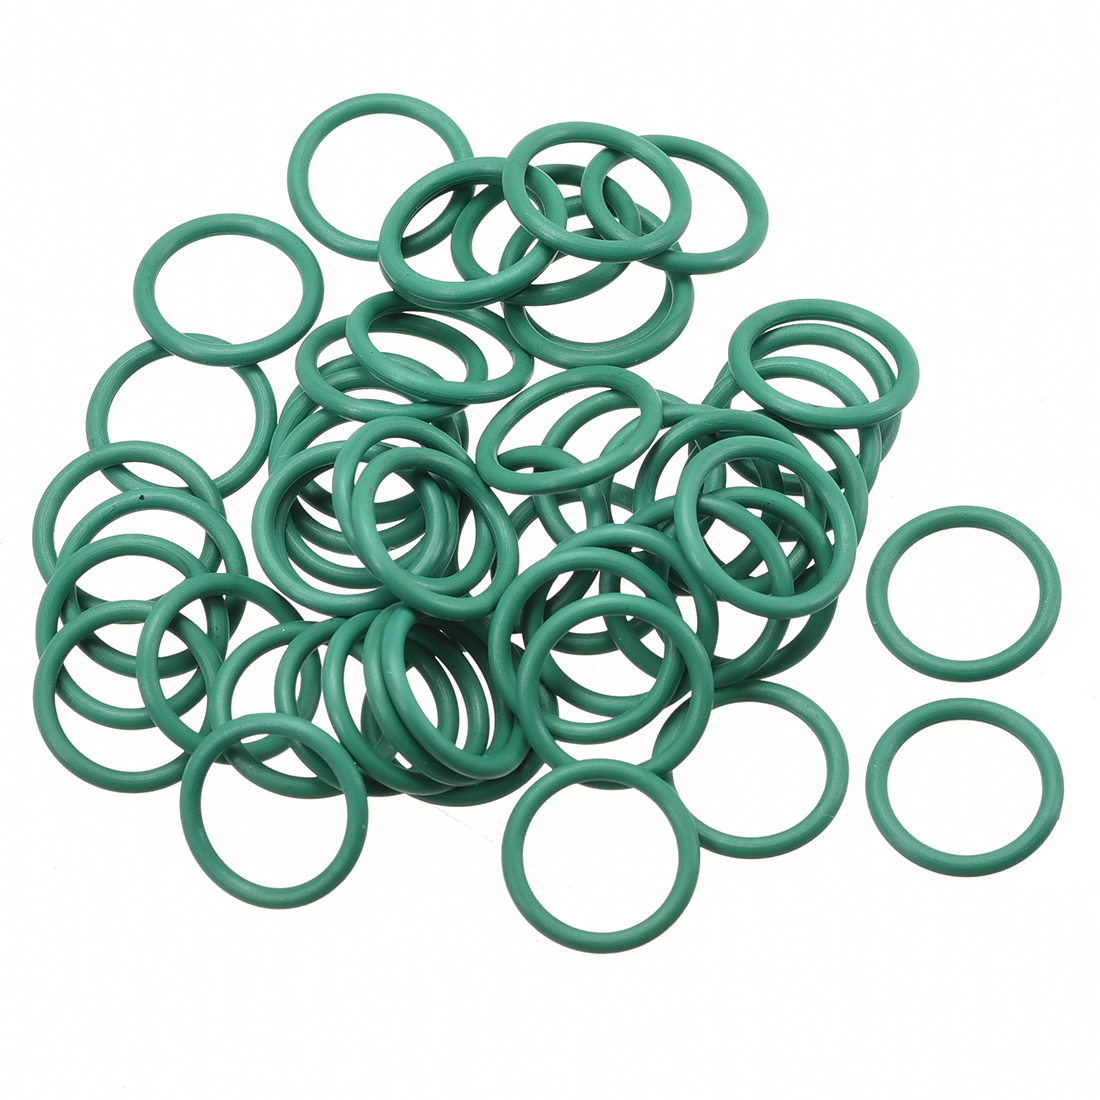 50pcs 13mm x 1.5mm Size Mechanical Rubber O Ring Oil Seal Gaskets Green